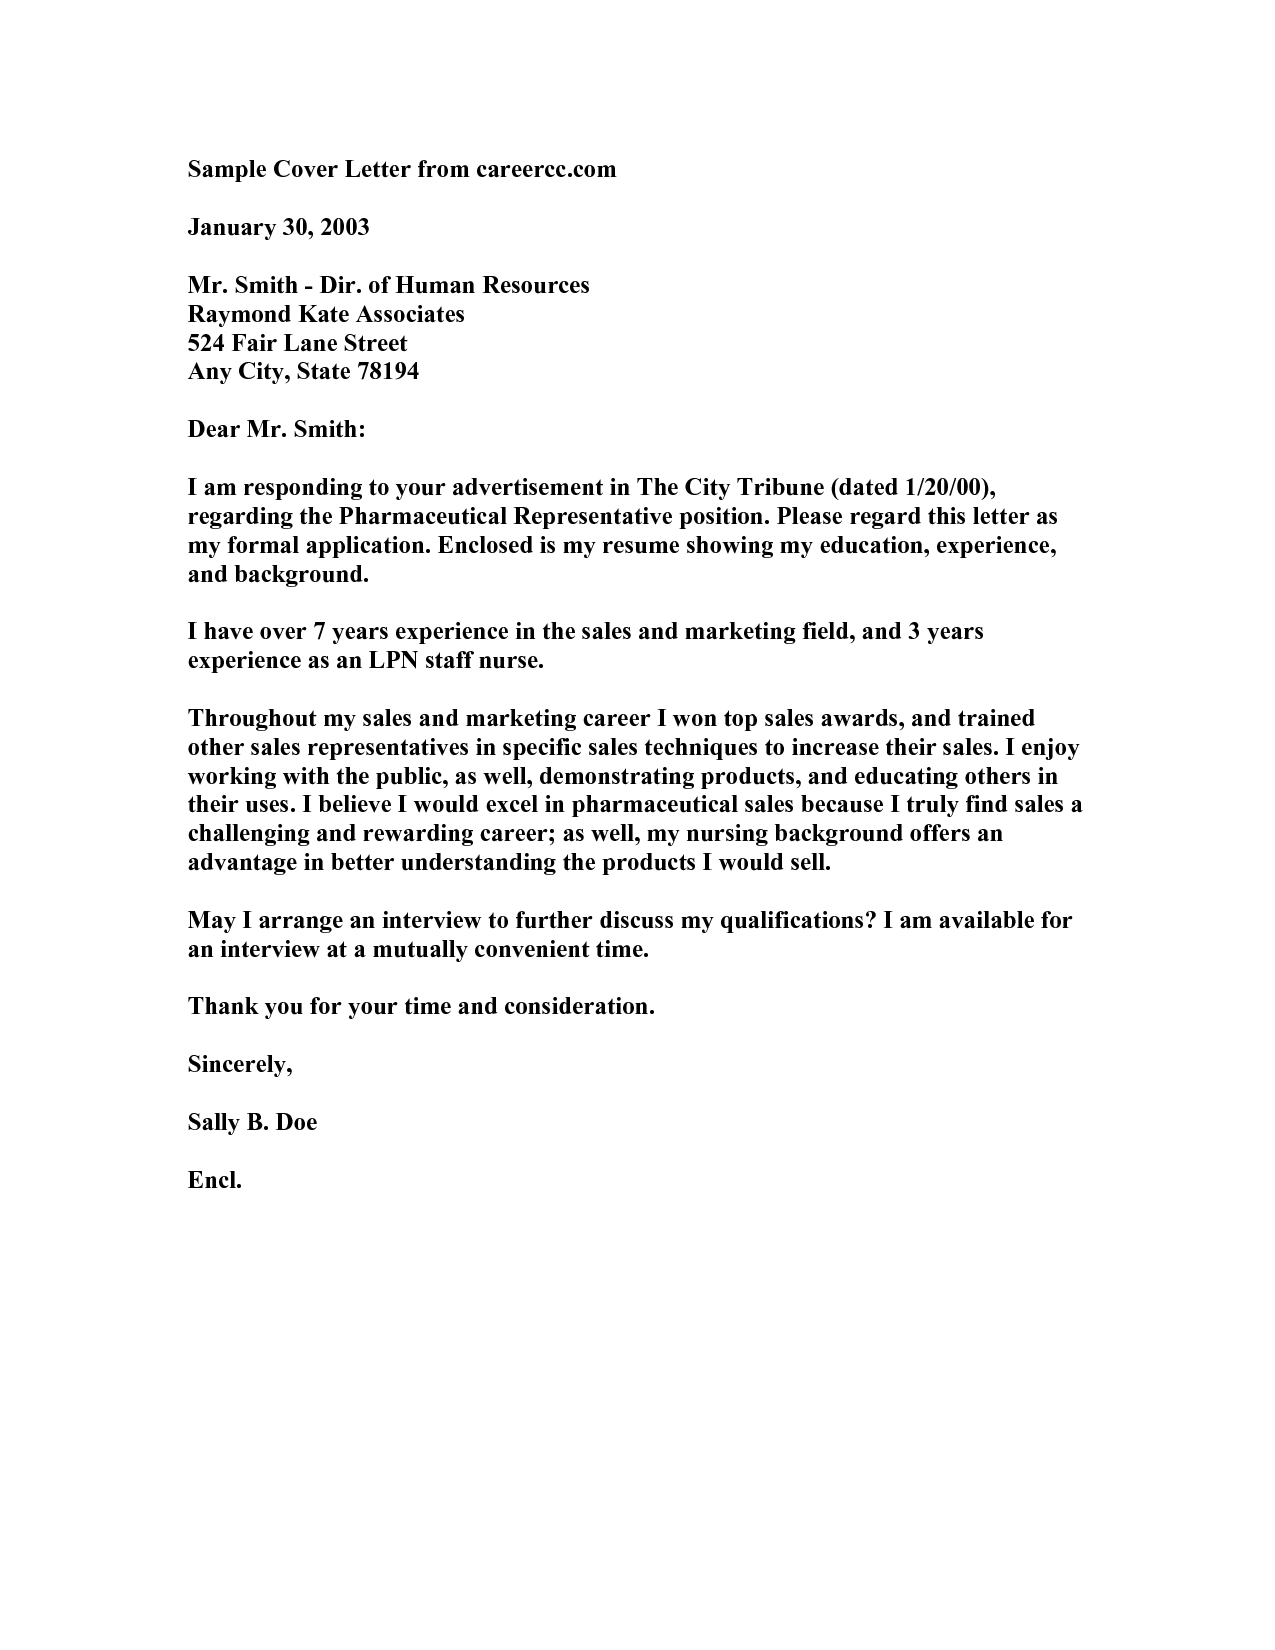 new grad nurse cover letter example lpn cover letter sample - Cover Letter For Lpn Resume